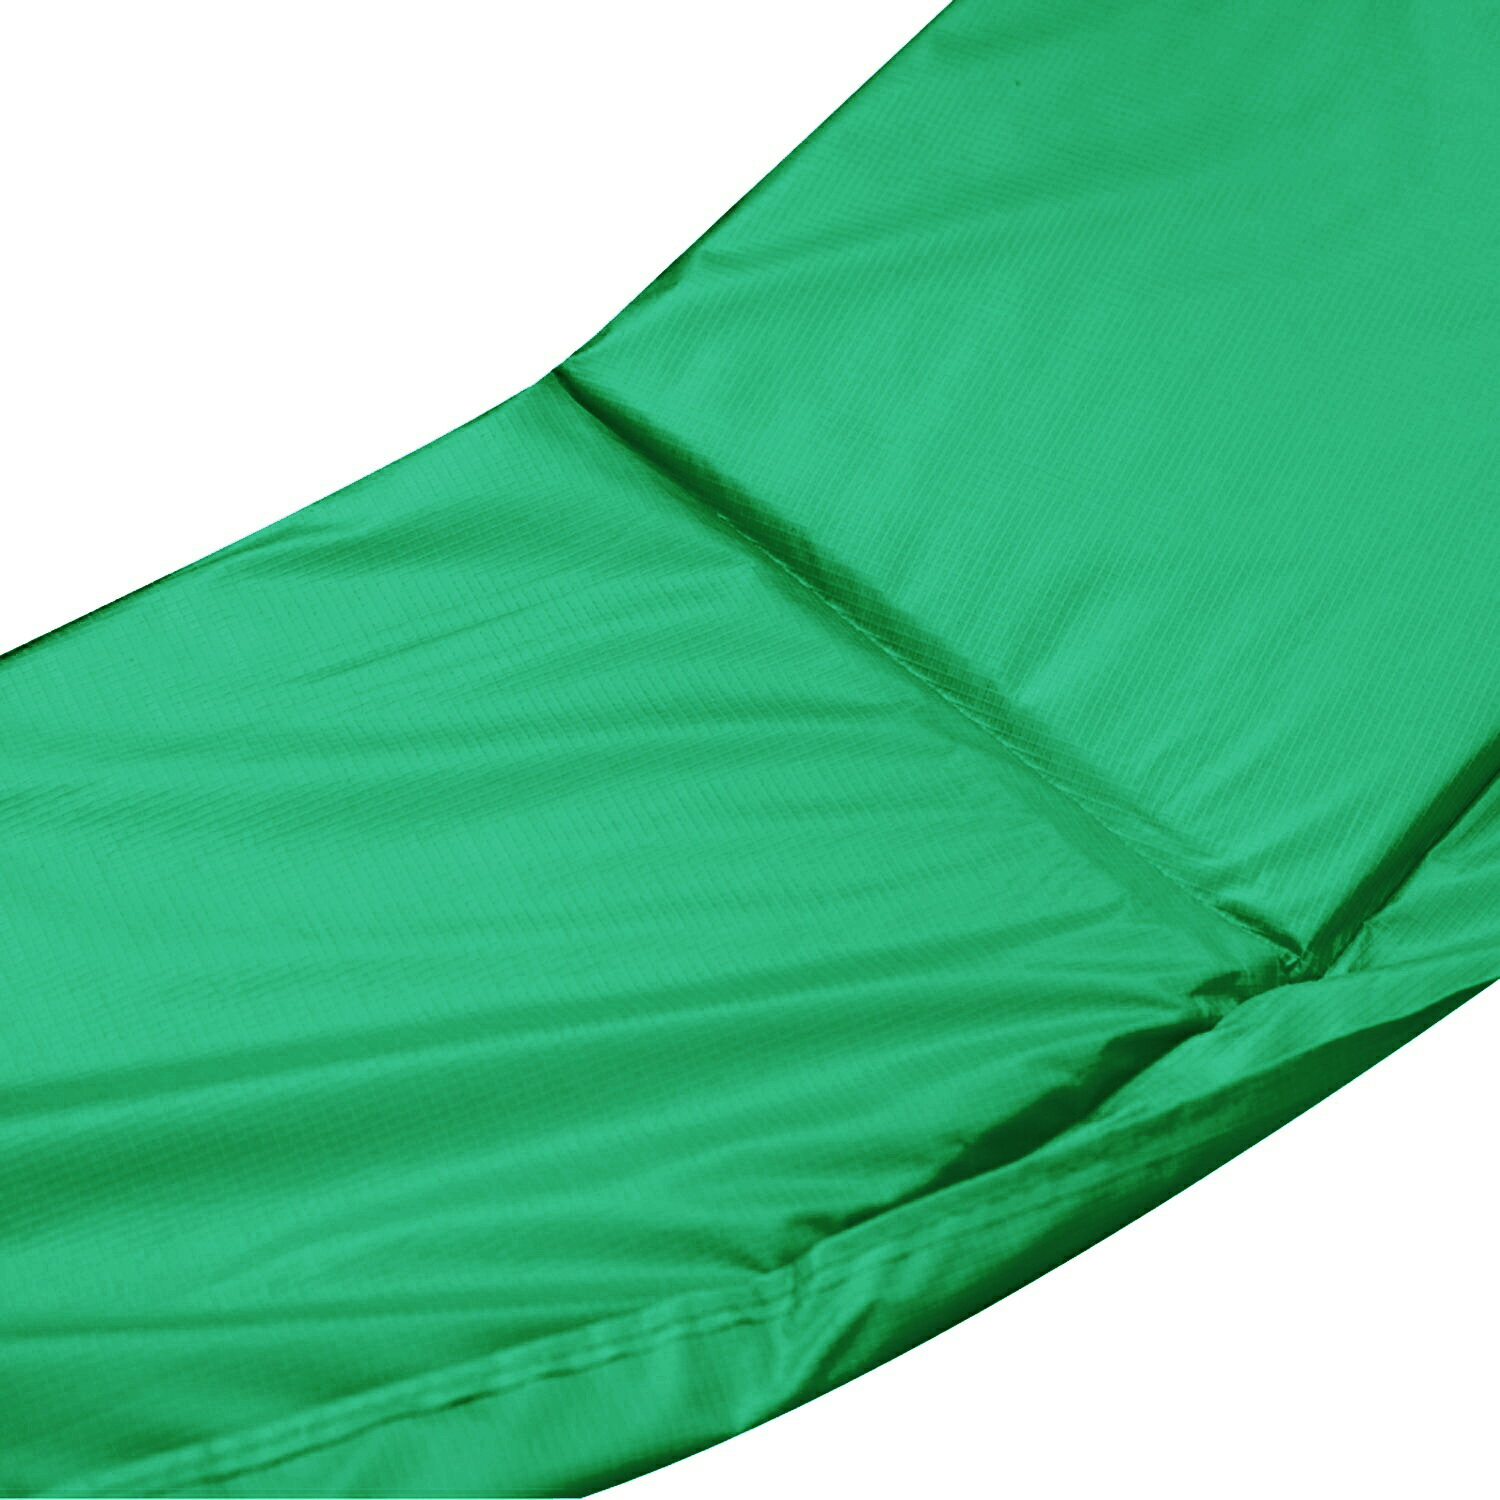 ExacMe 15' rampoline Replacement Safety Pad Frame Spring Round Cover Green 1